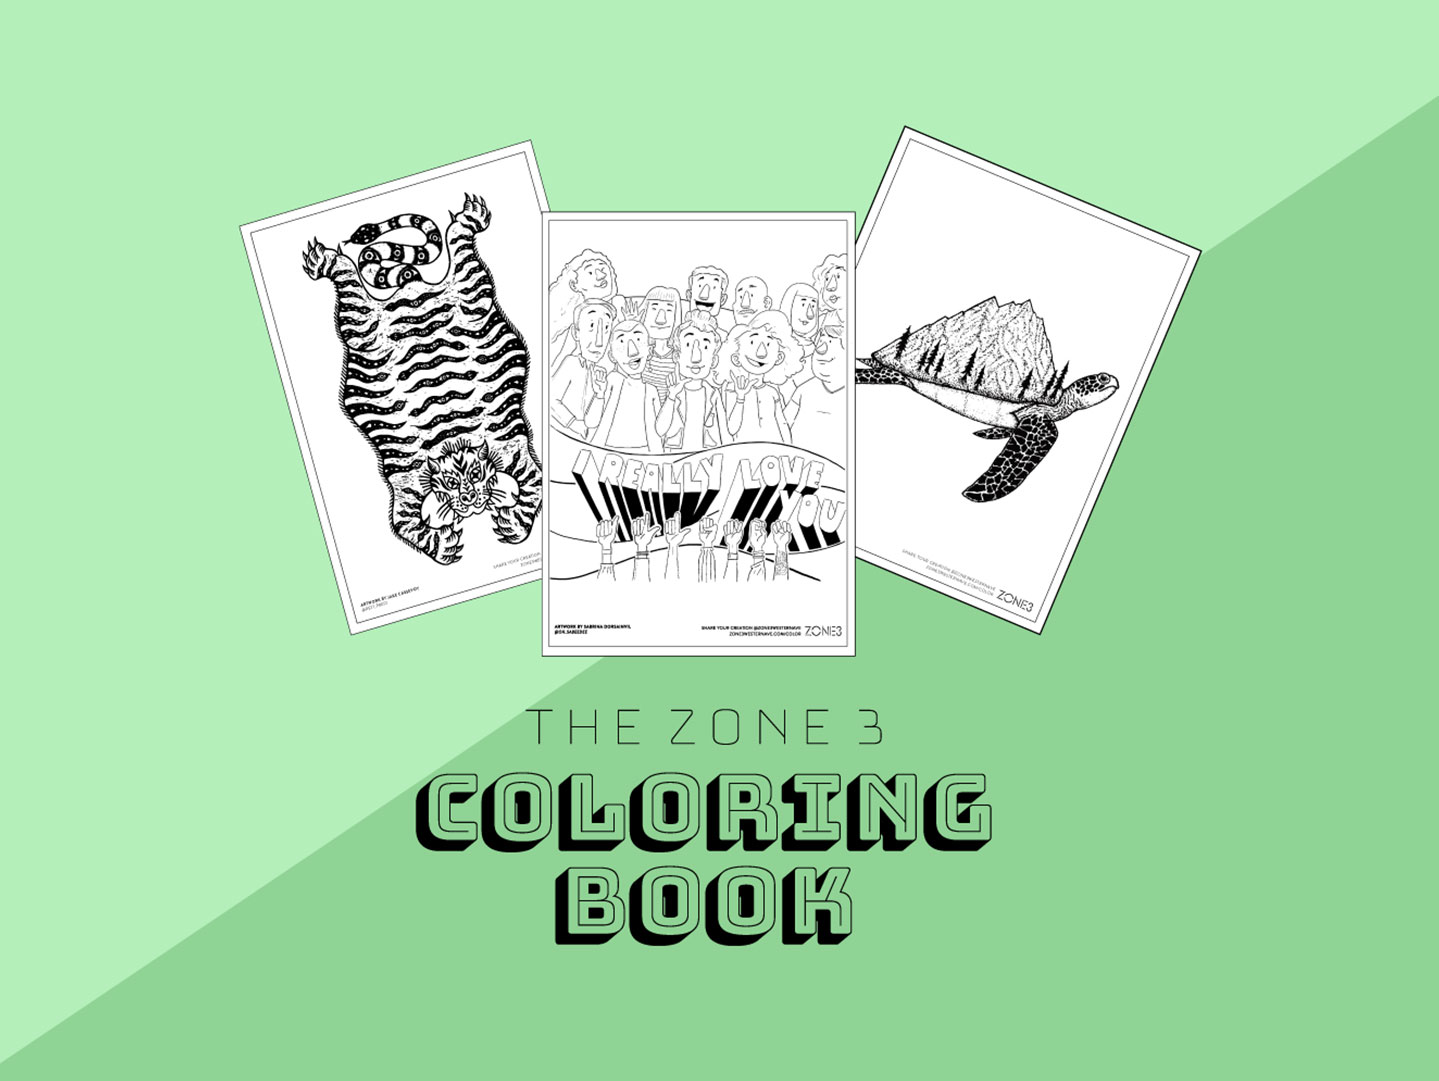 Zone 3 Coloring Book